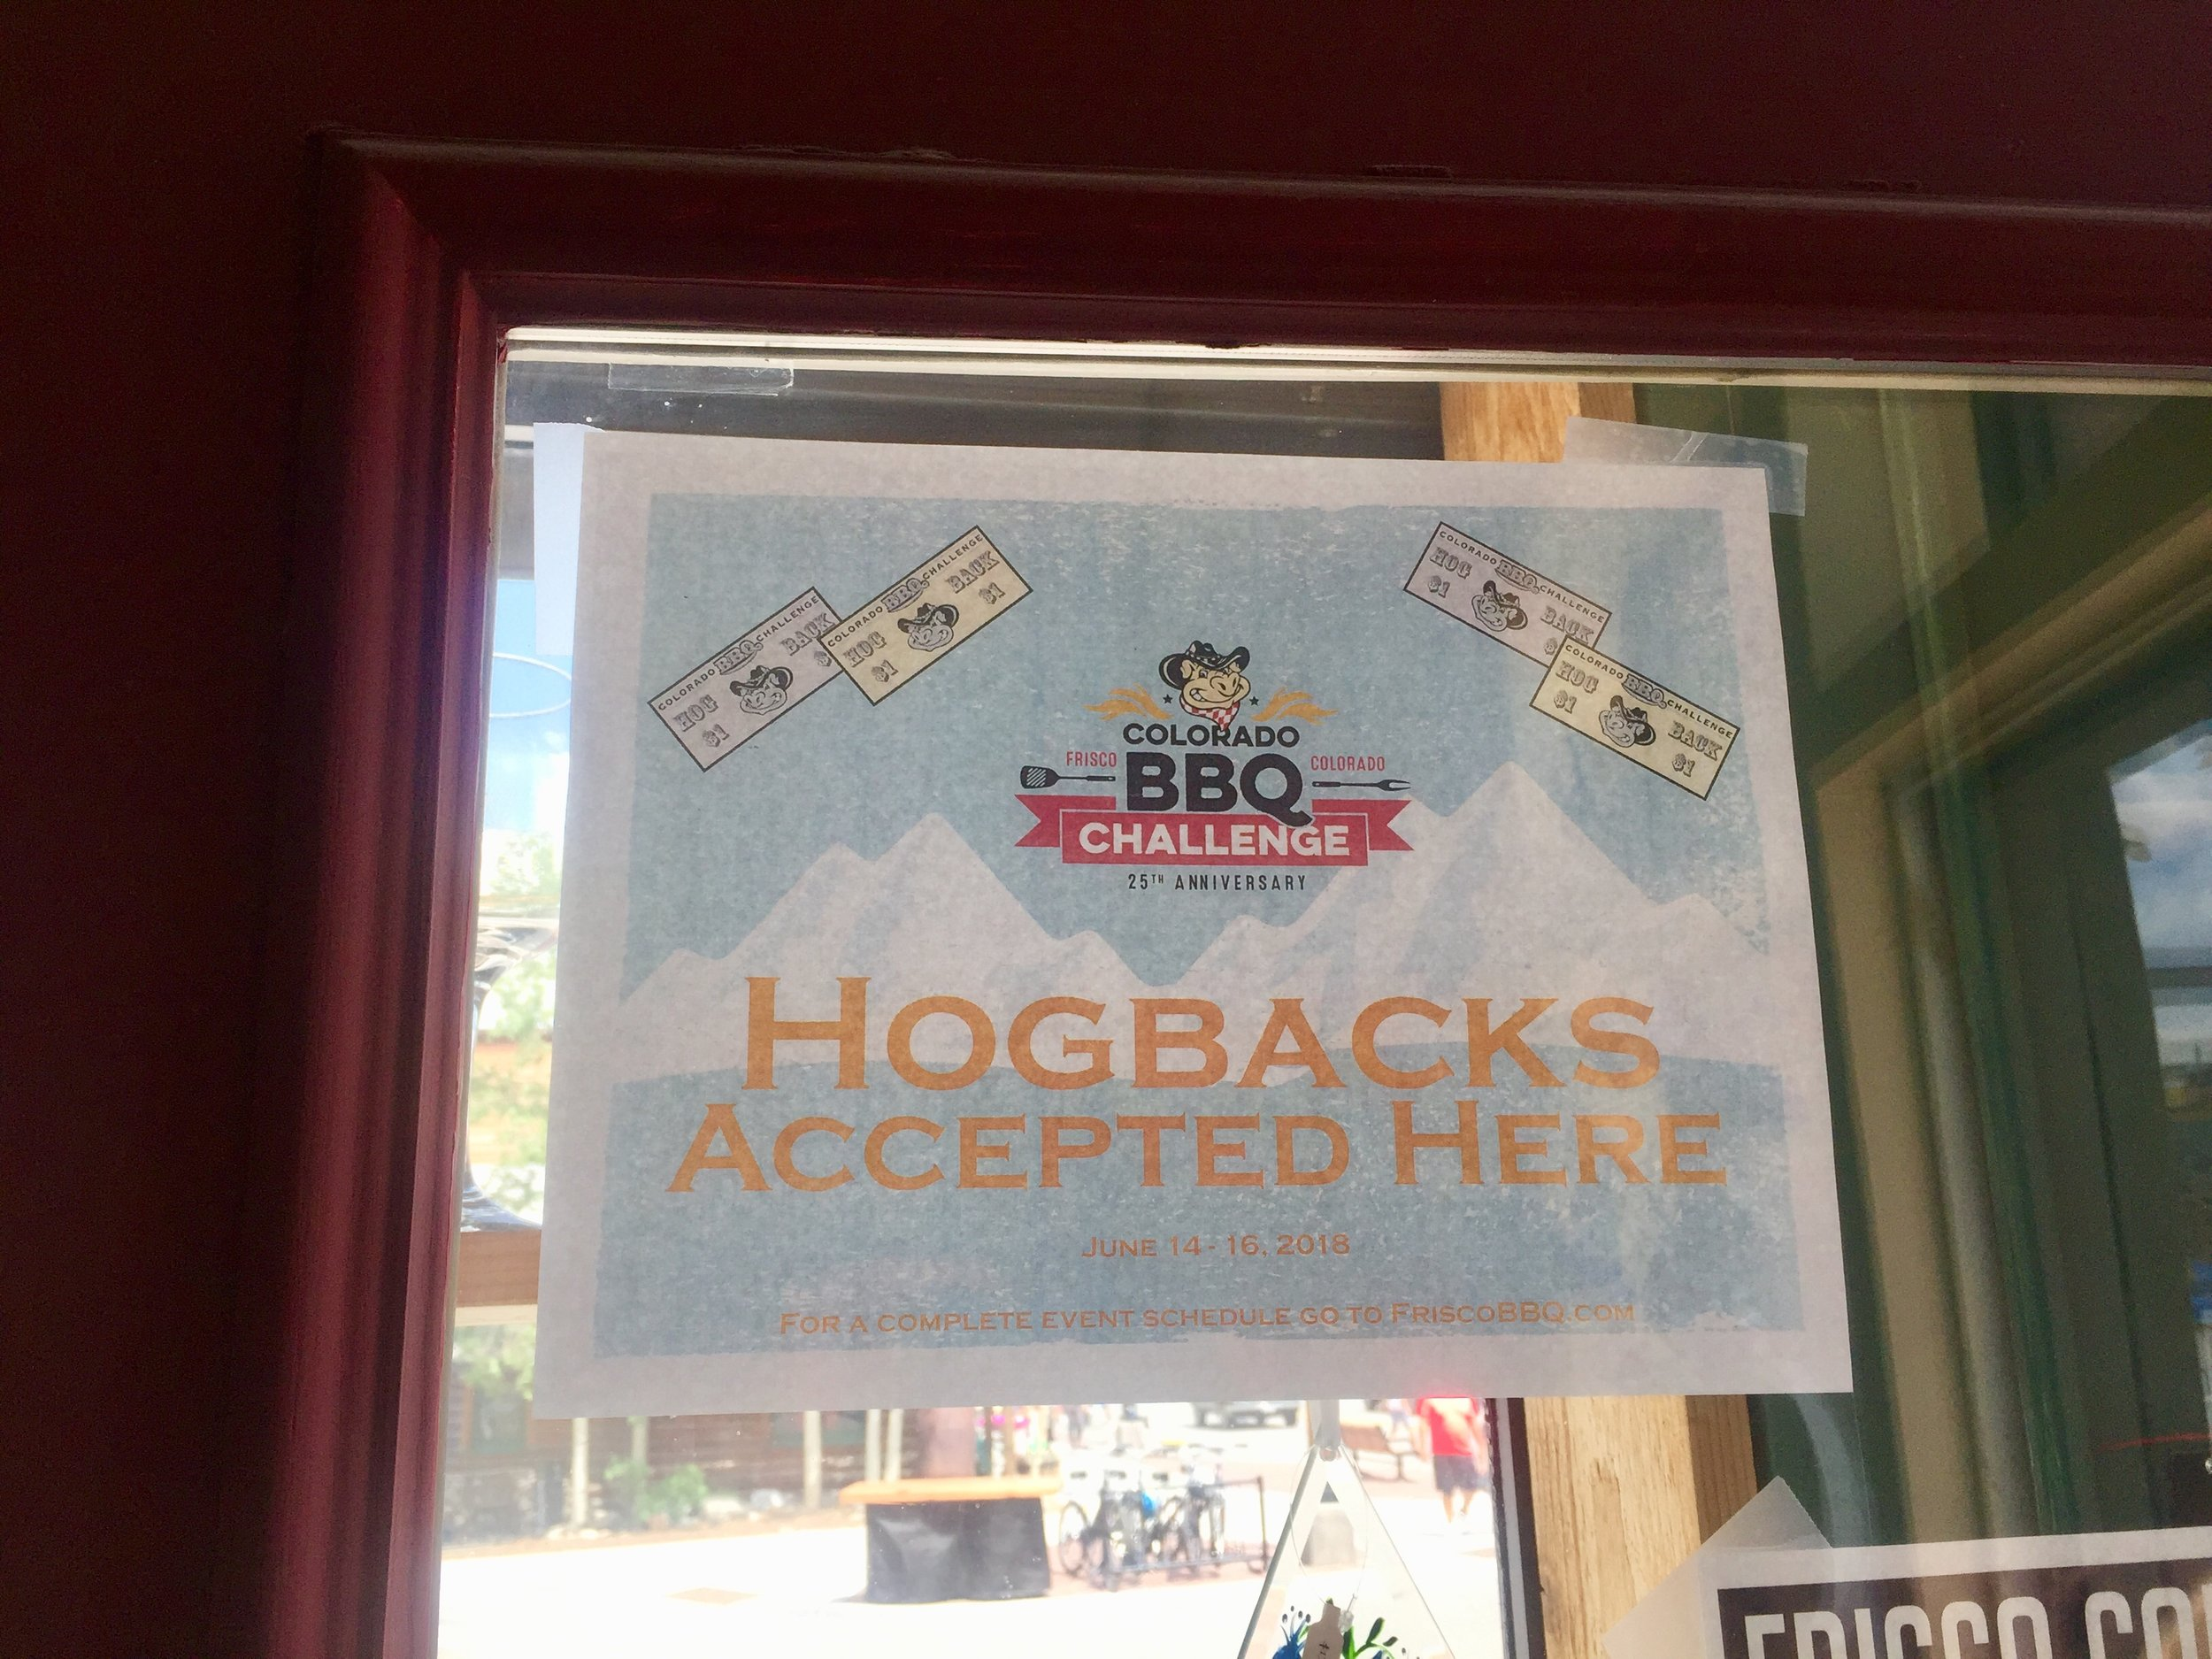 Don't forget to trade in some money for Hogbacks, the official currency of the Frisco BBQ Challenge! If you end up with some Hogbacks left over, you can use them same as cash in several local shops, including ours!